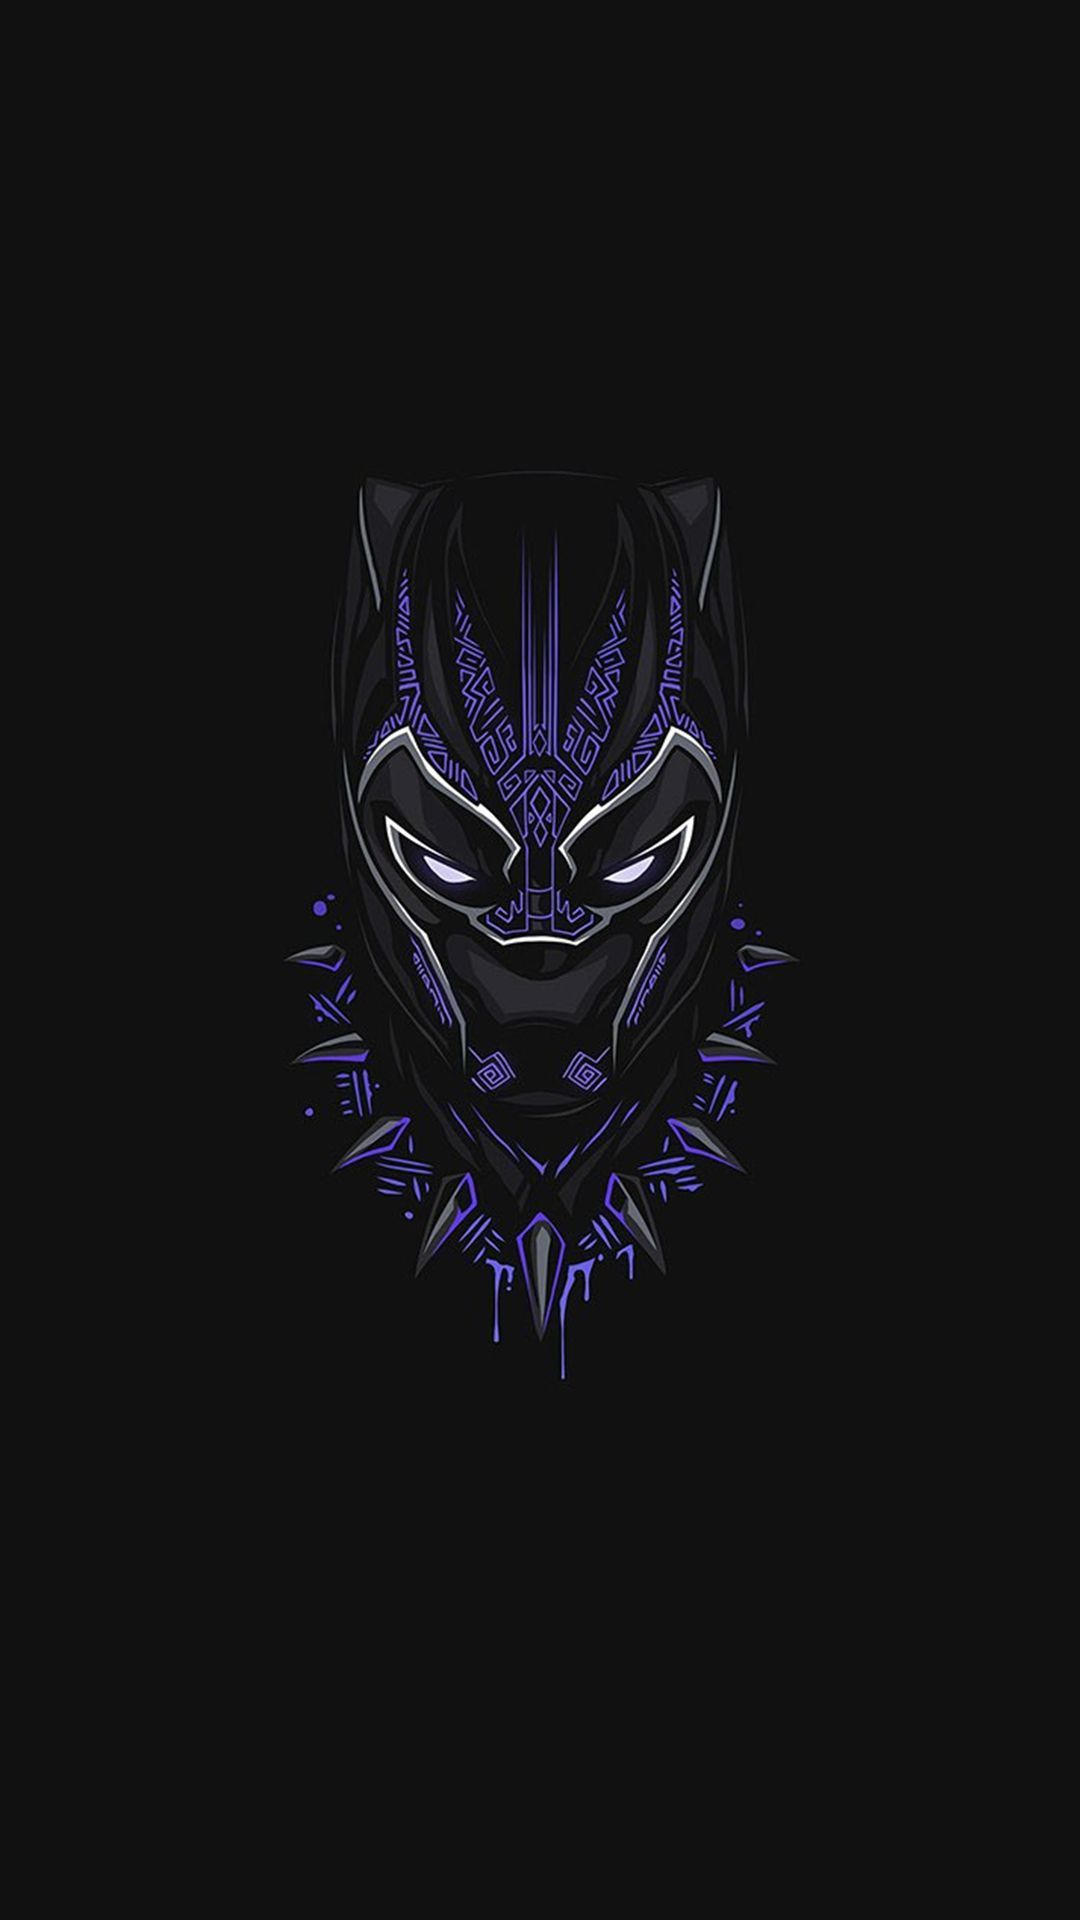 Minimalist Black Panther Wallpapers Top Free Minimalist Black Panther Backgrounds Wallpaperaccess